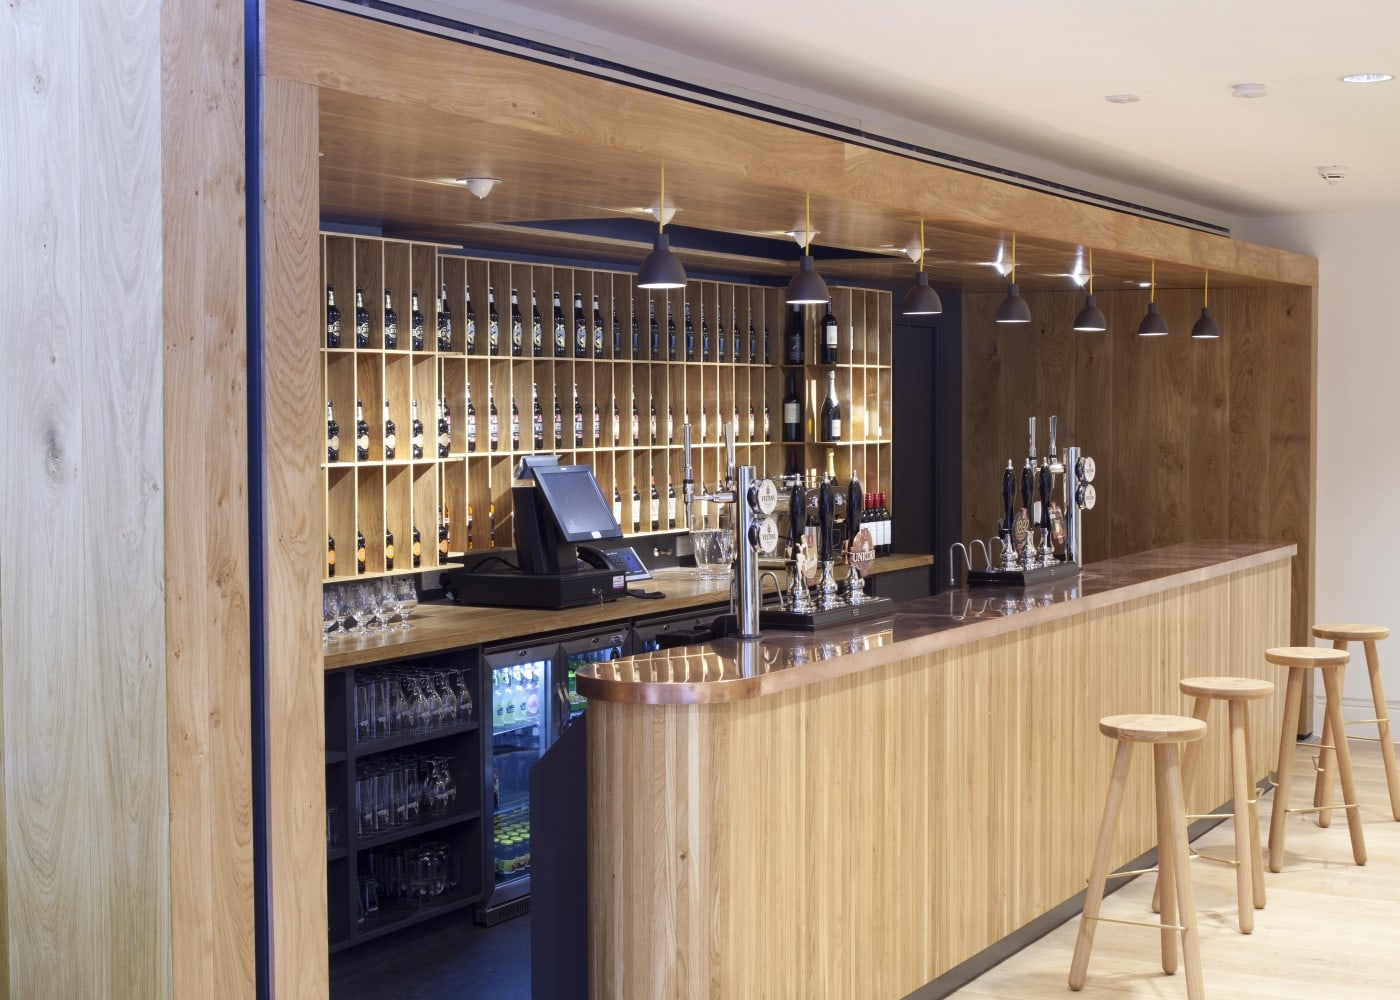 hospitality lighting design: bar area